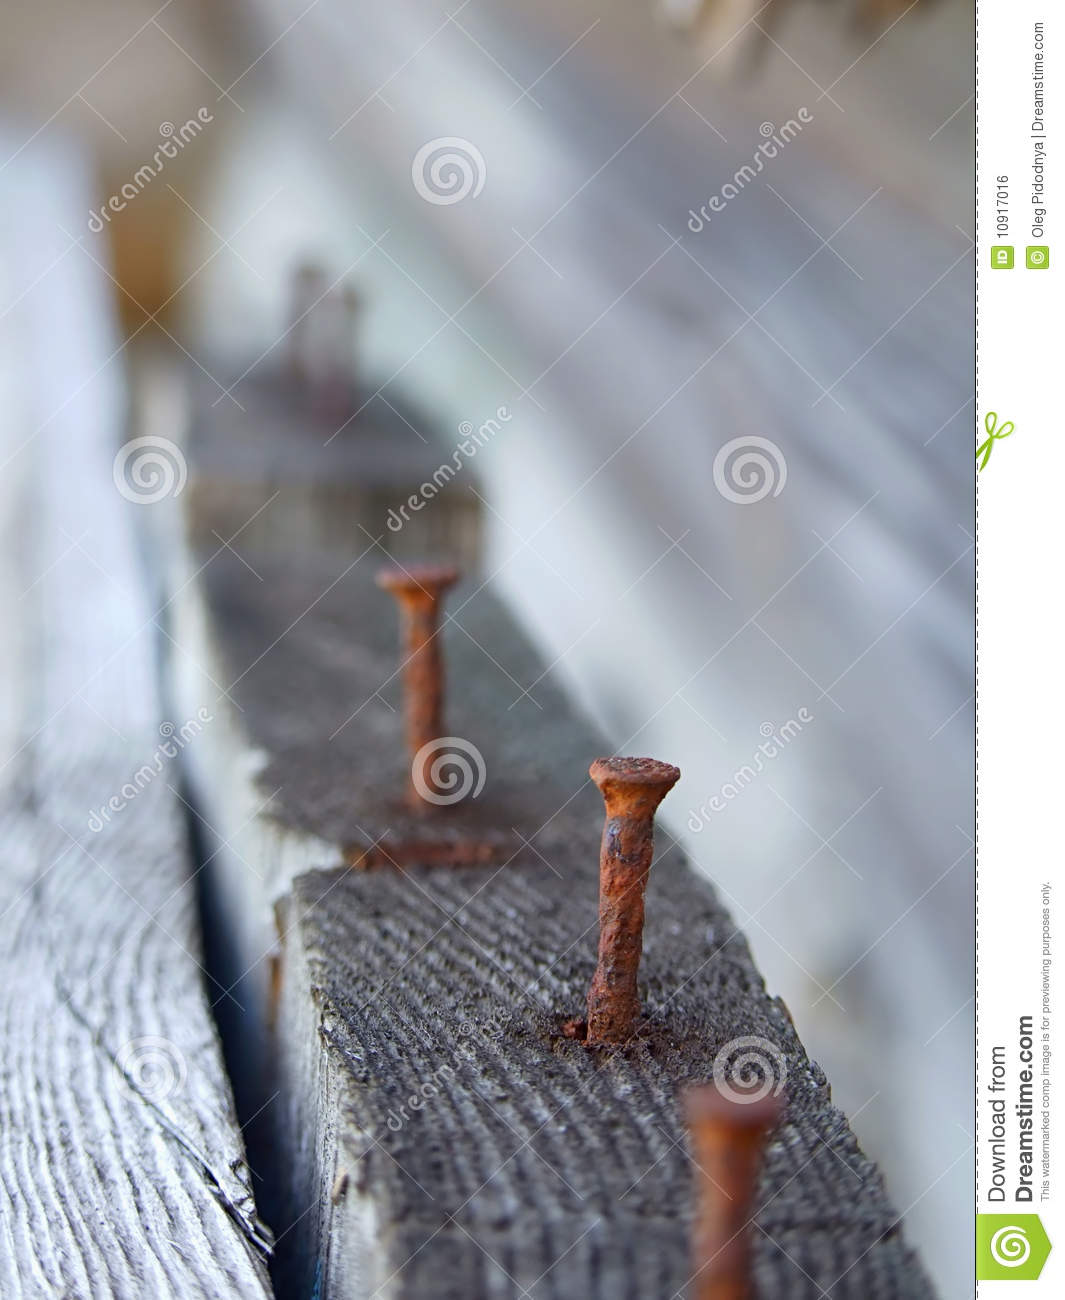 Rusty Nail In Wood Royalty Free Stock Image - Image: 10917016